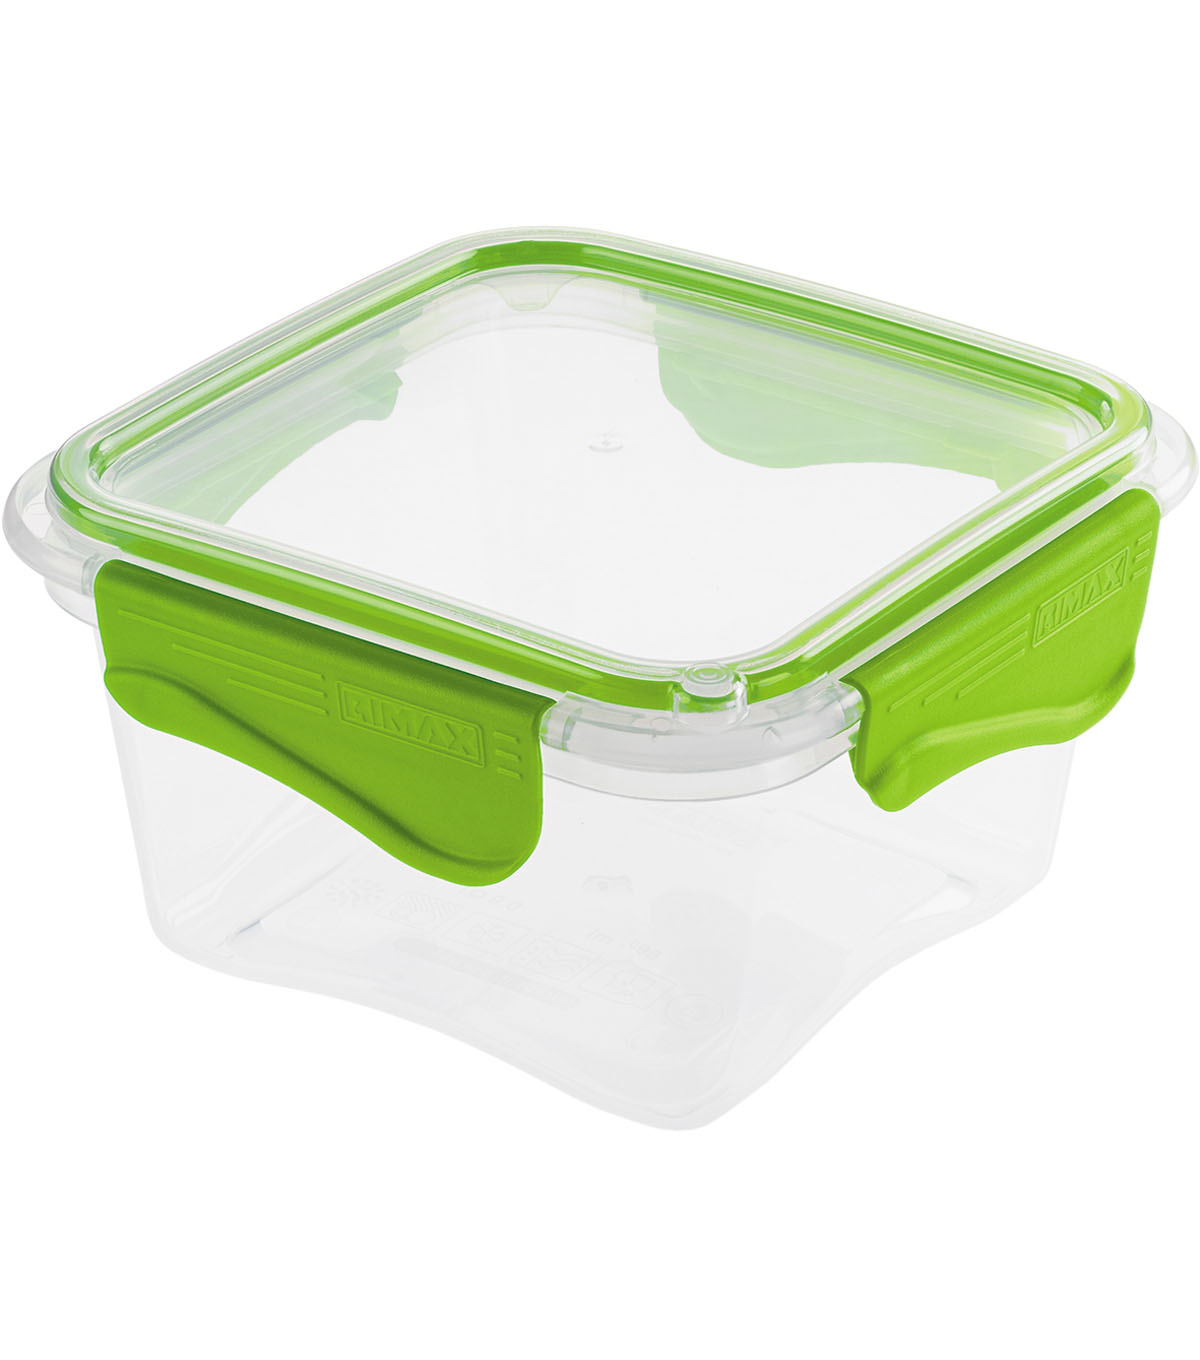 Rimax 29 oz. Food Storage Container -Clear & Lime